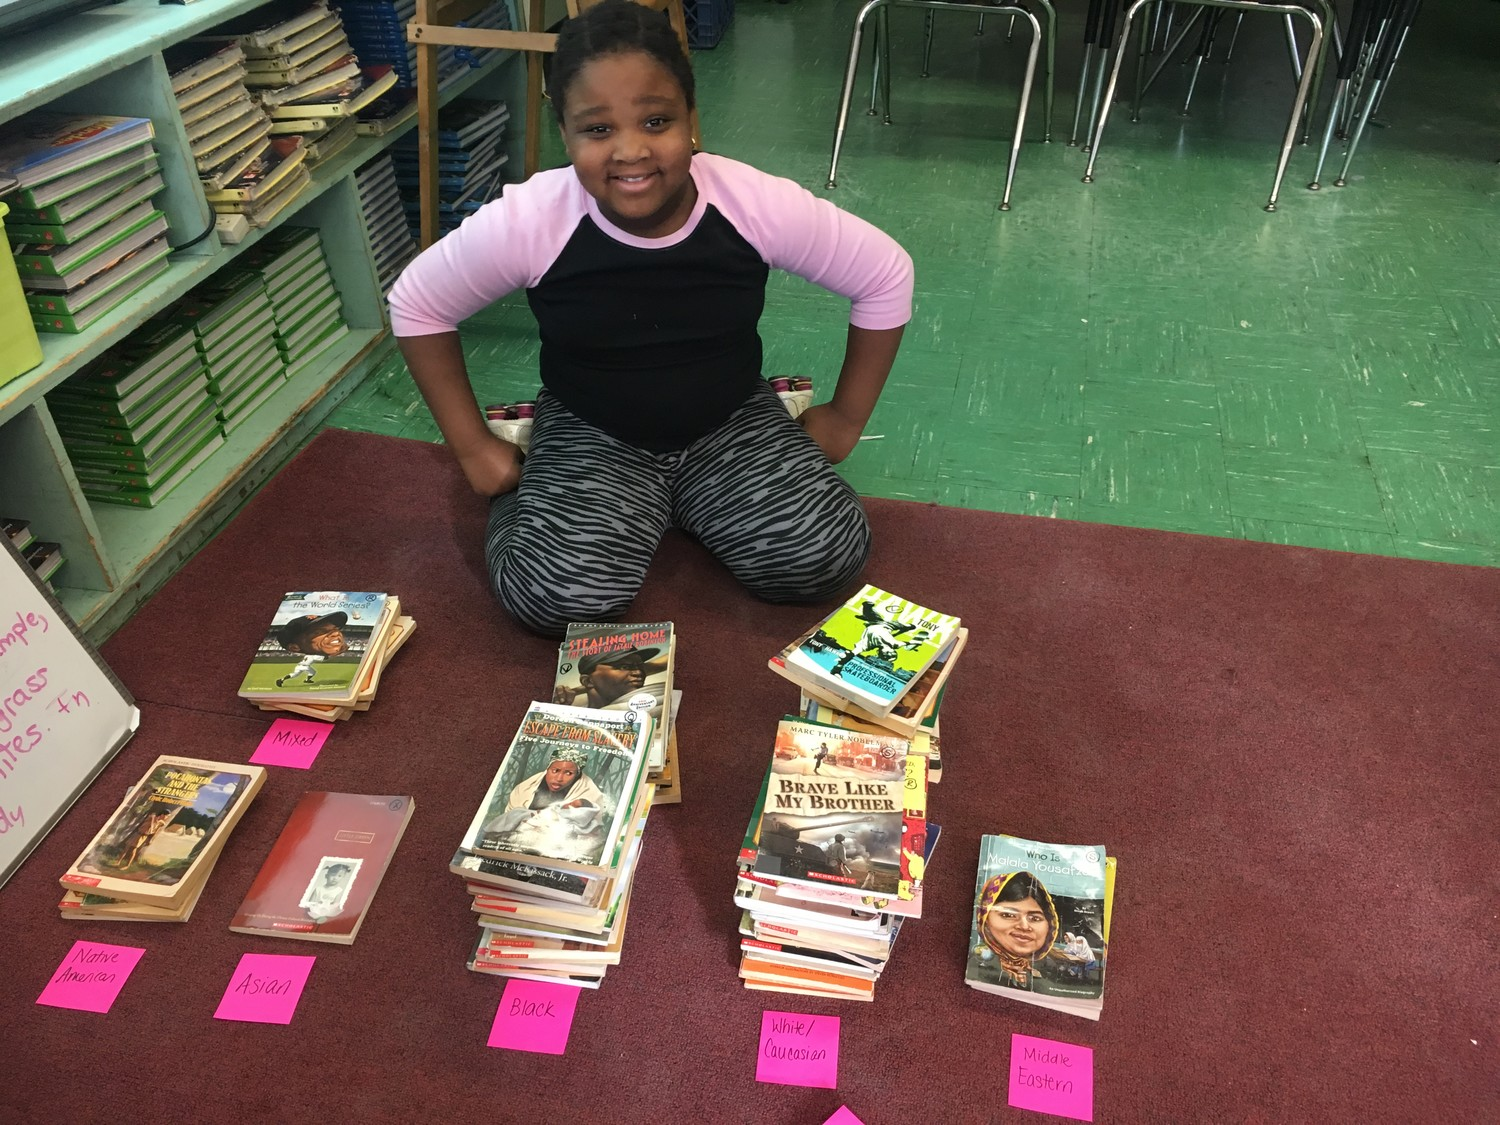 Students at Howell Road Elementary School sorted books in their classroom libraries based on the protagonists' culture.